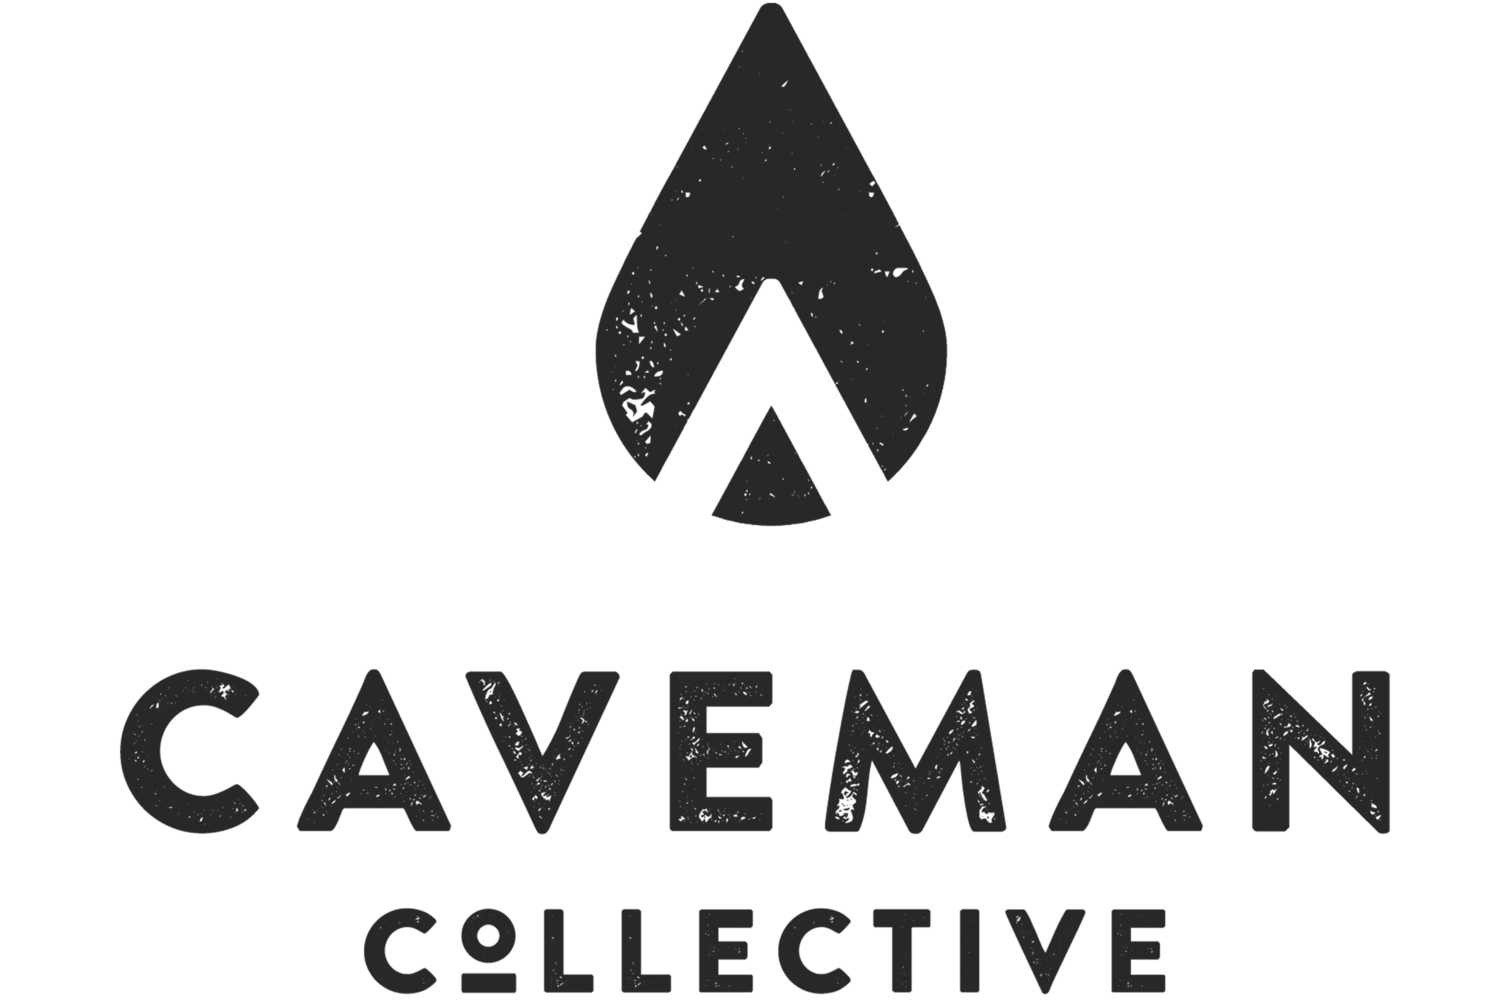 Caveman Collective